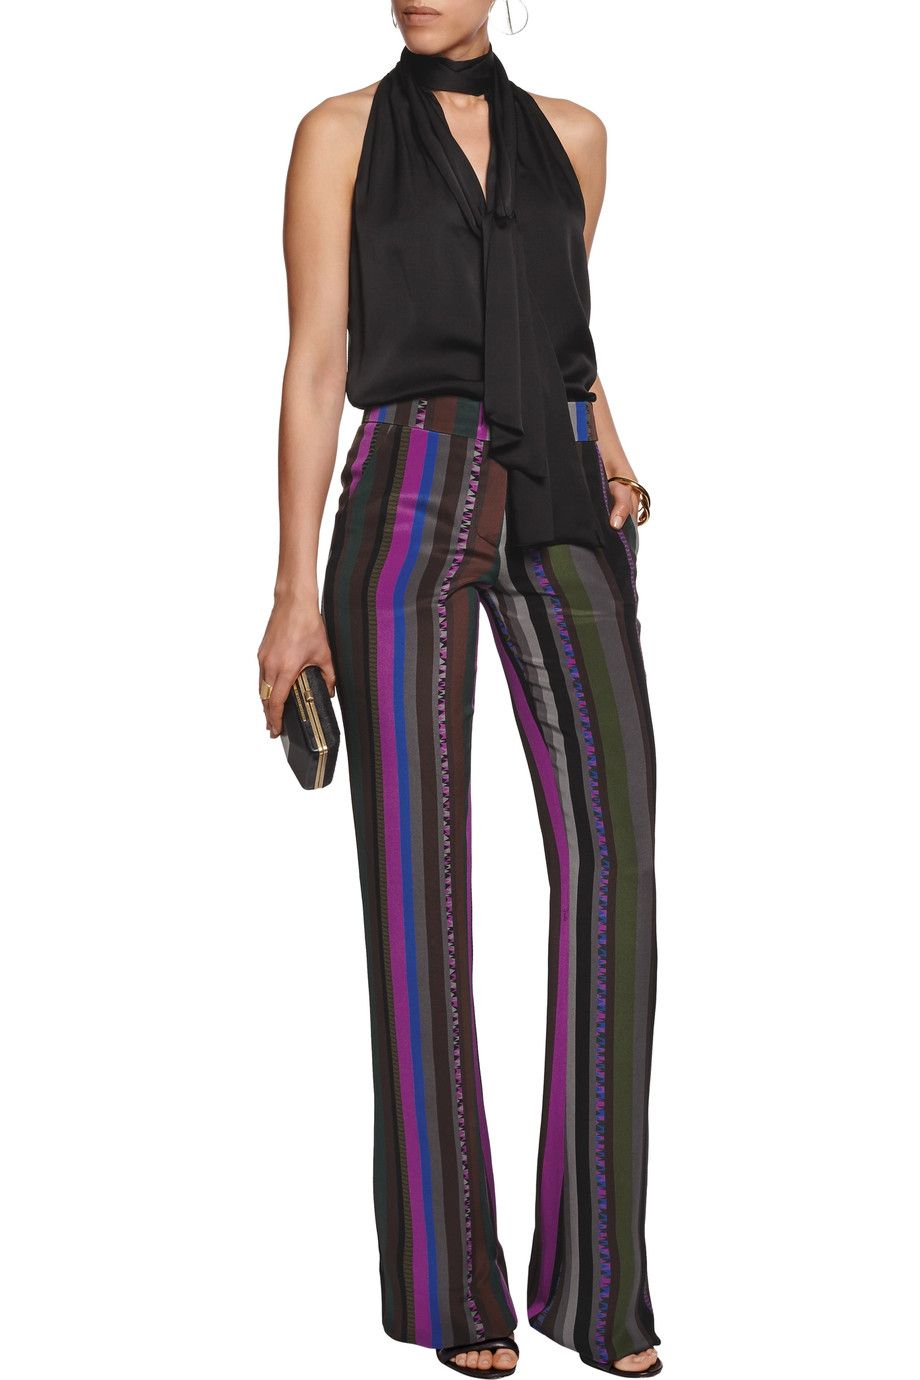 4c161b0321b9 Shop on-sale Emilio Pucci Printed silk-satin flared pants. Browse other  discount